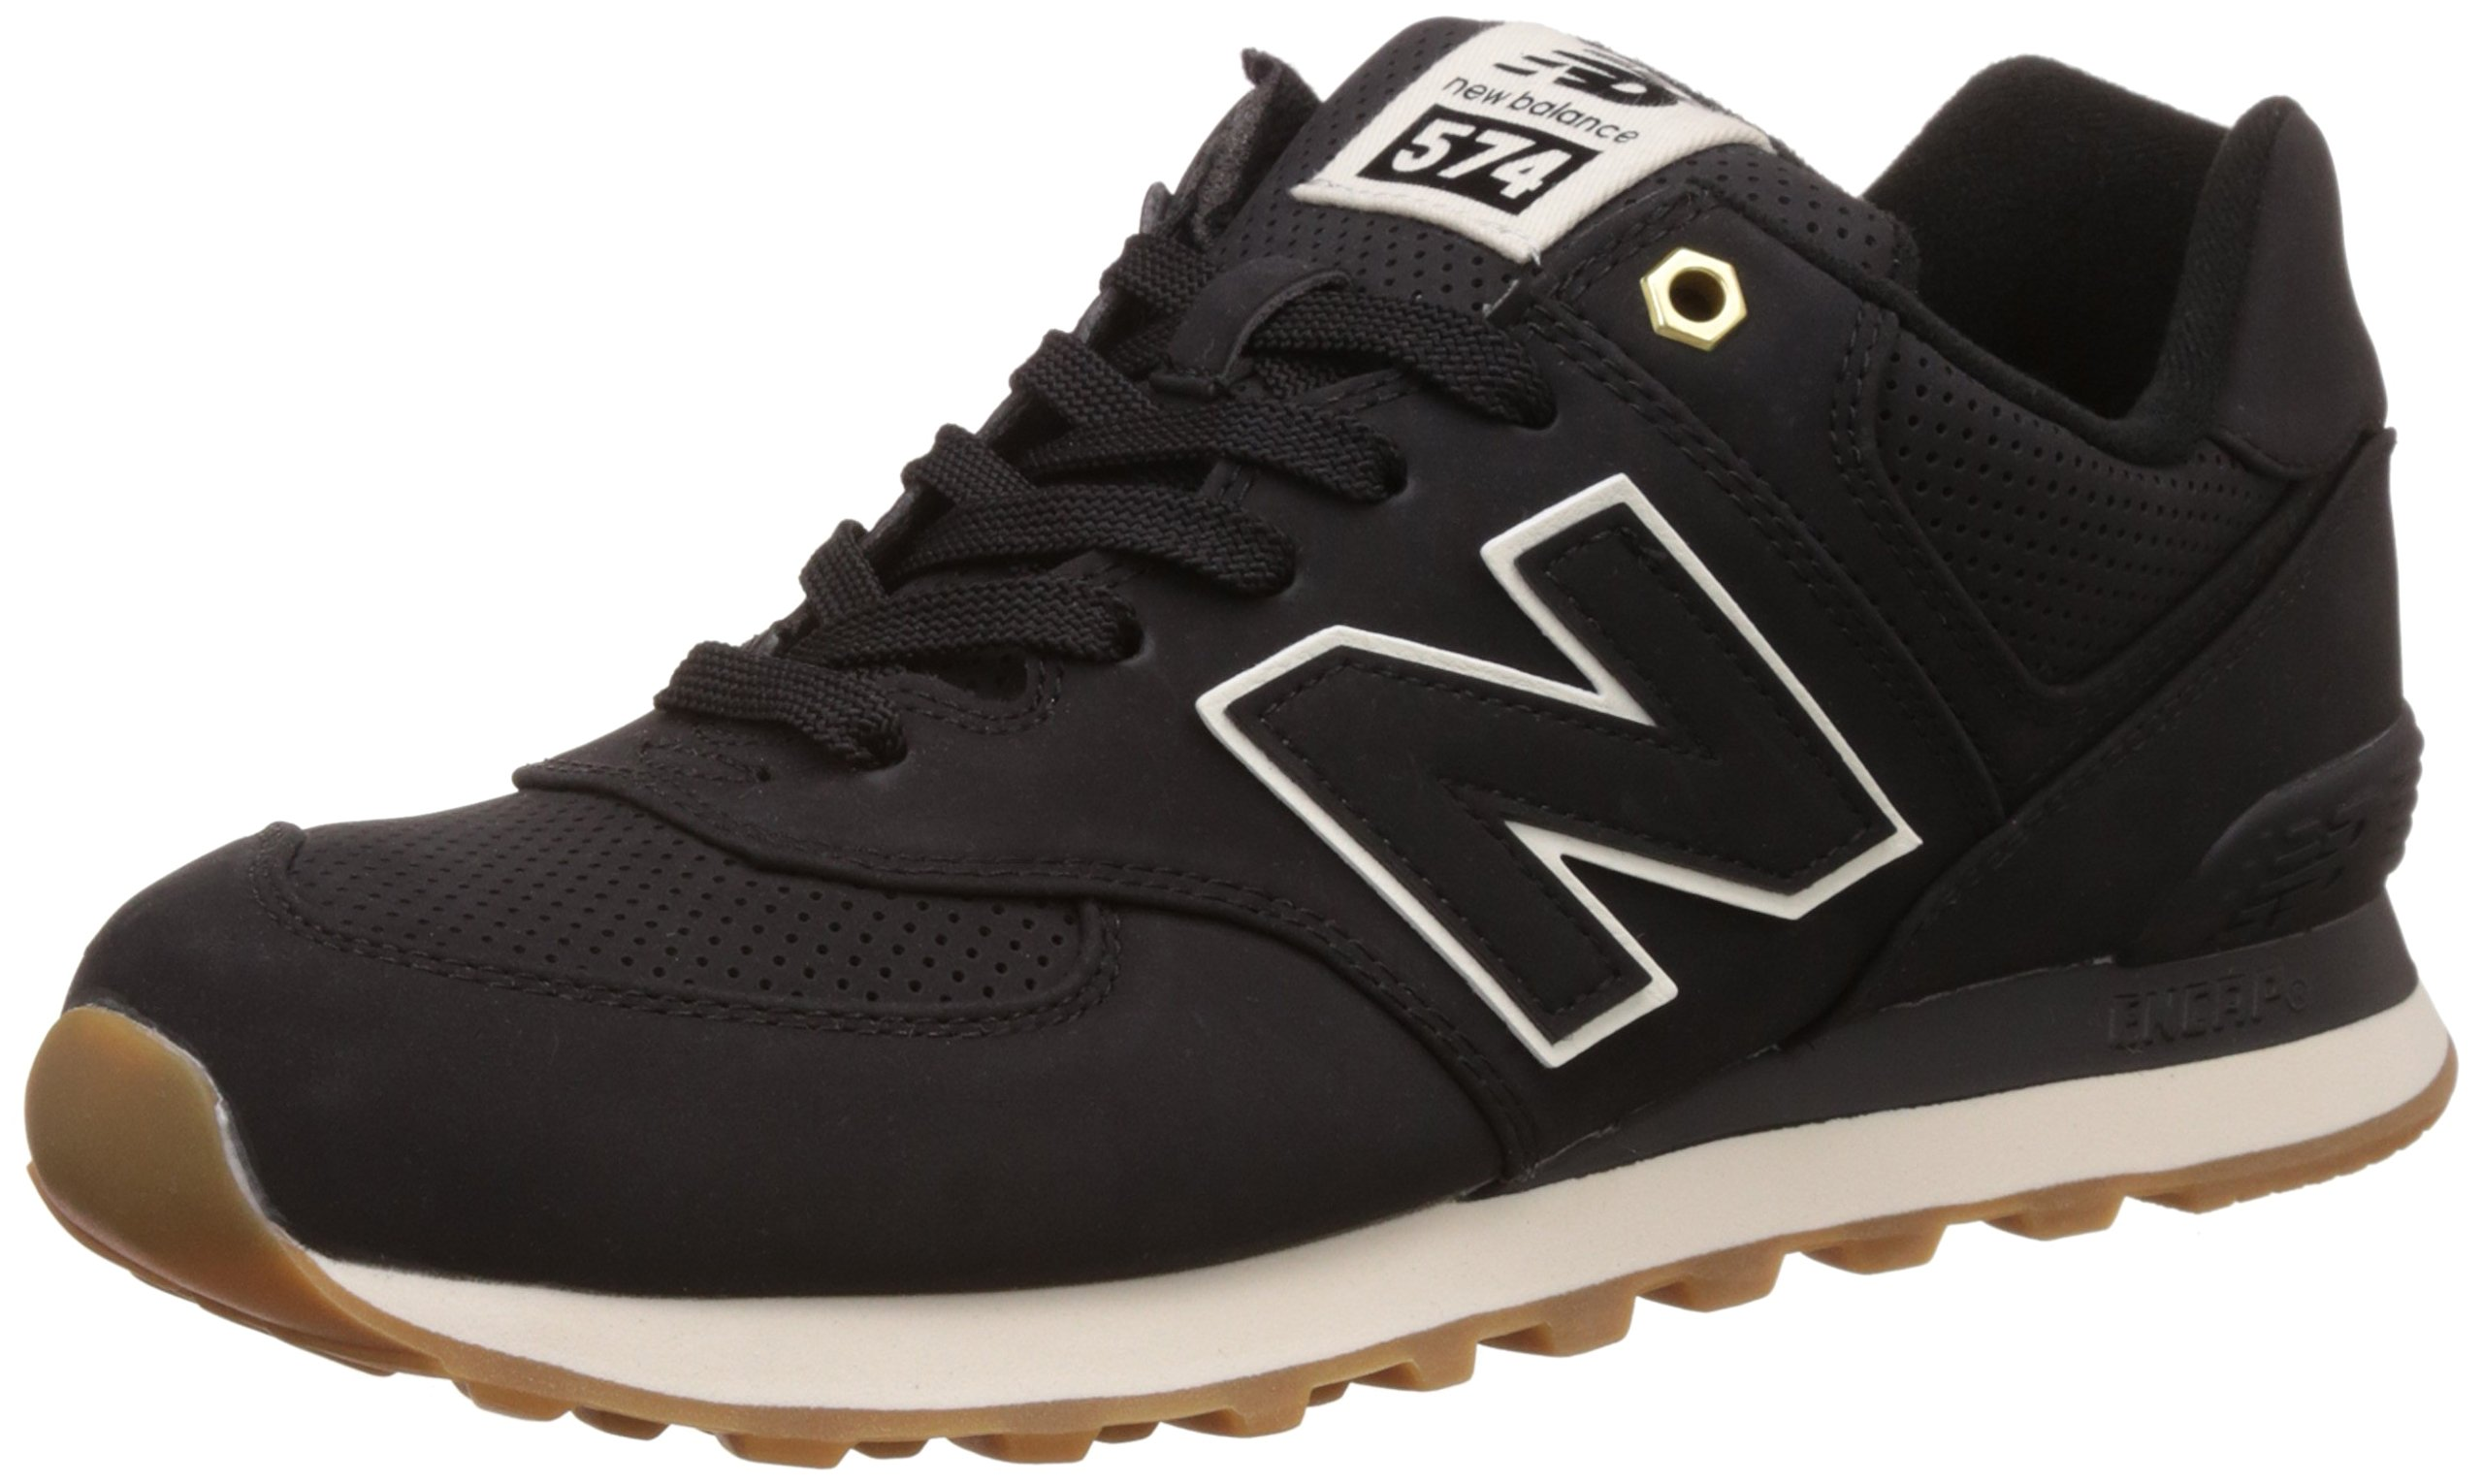 half off 9f21f d1449 ... sweden free shipping new balance mens 574 outdoor boot pack shoes  sedona ml574hra a . 7e9f0